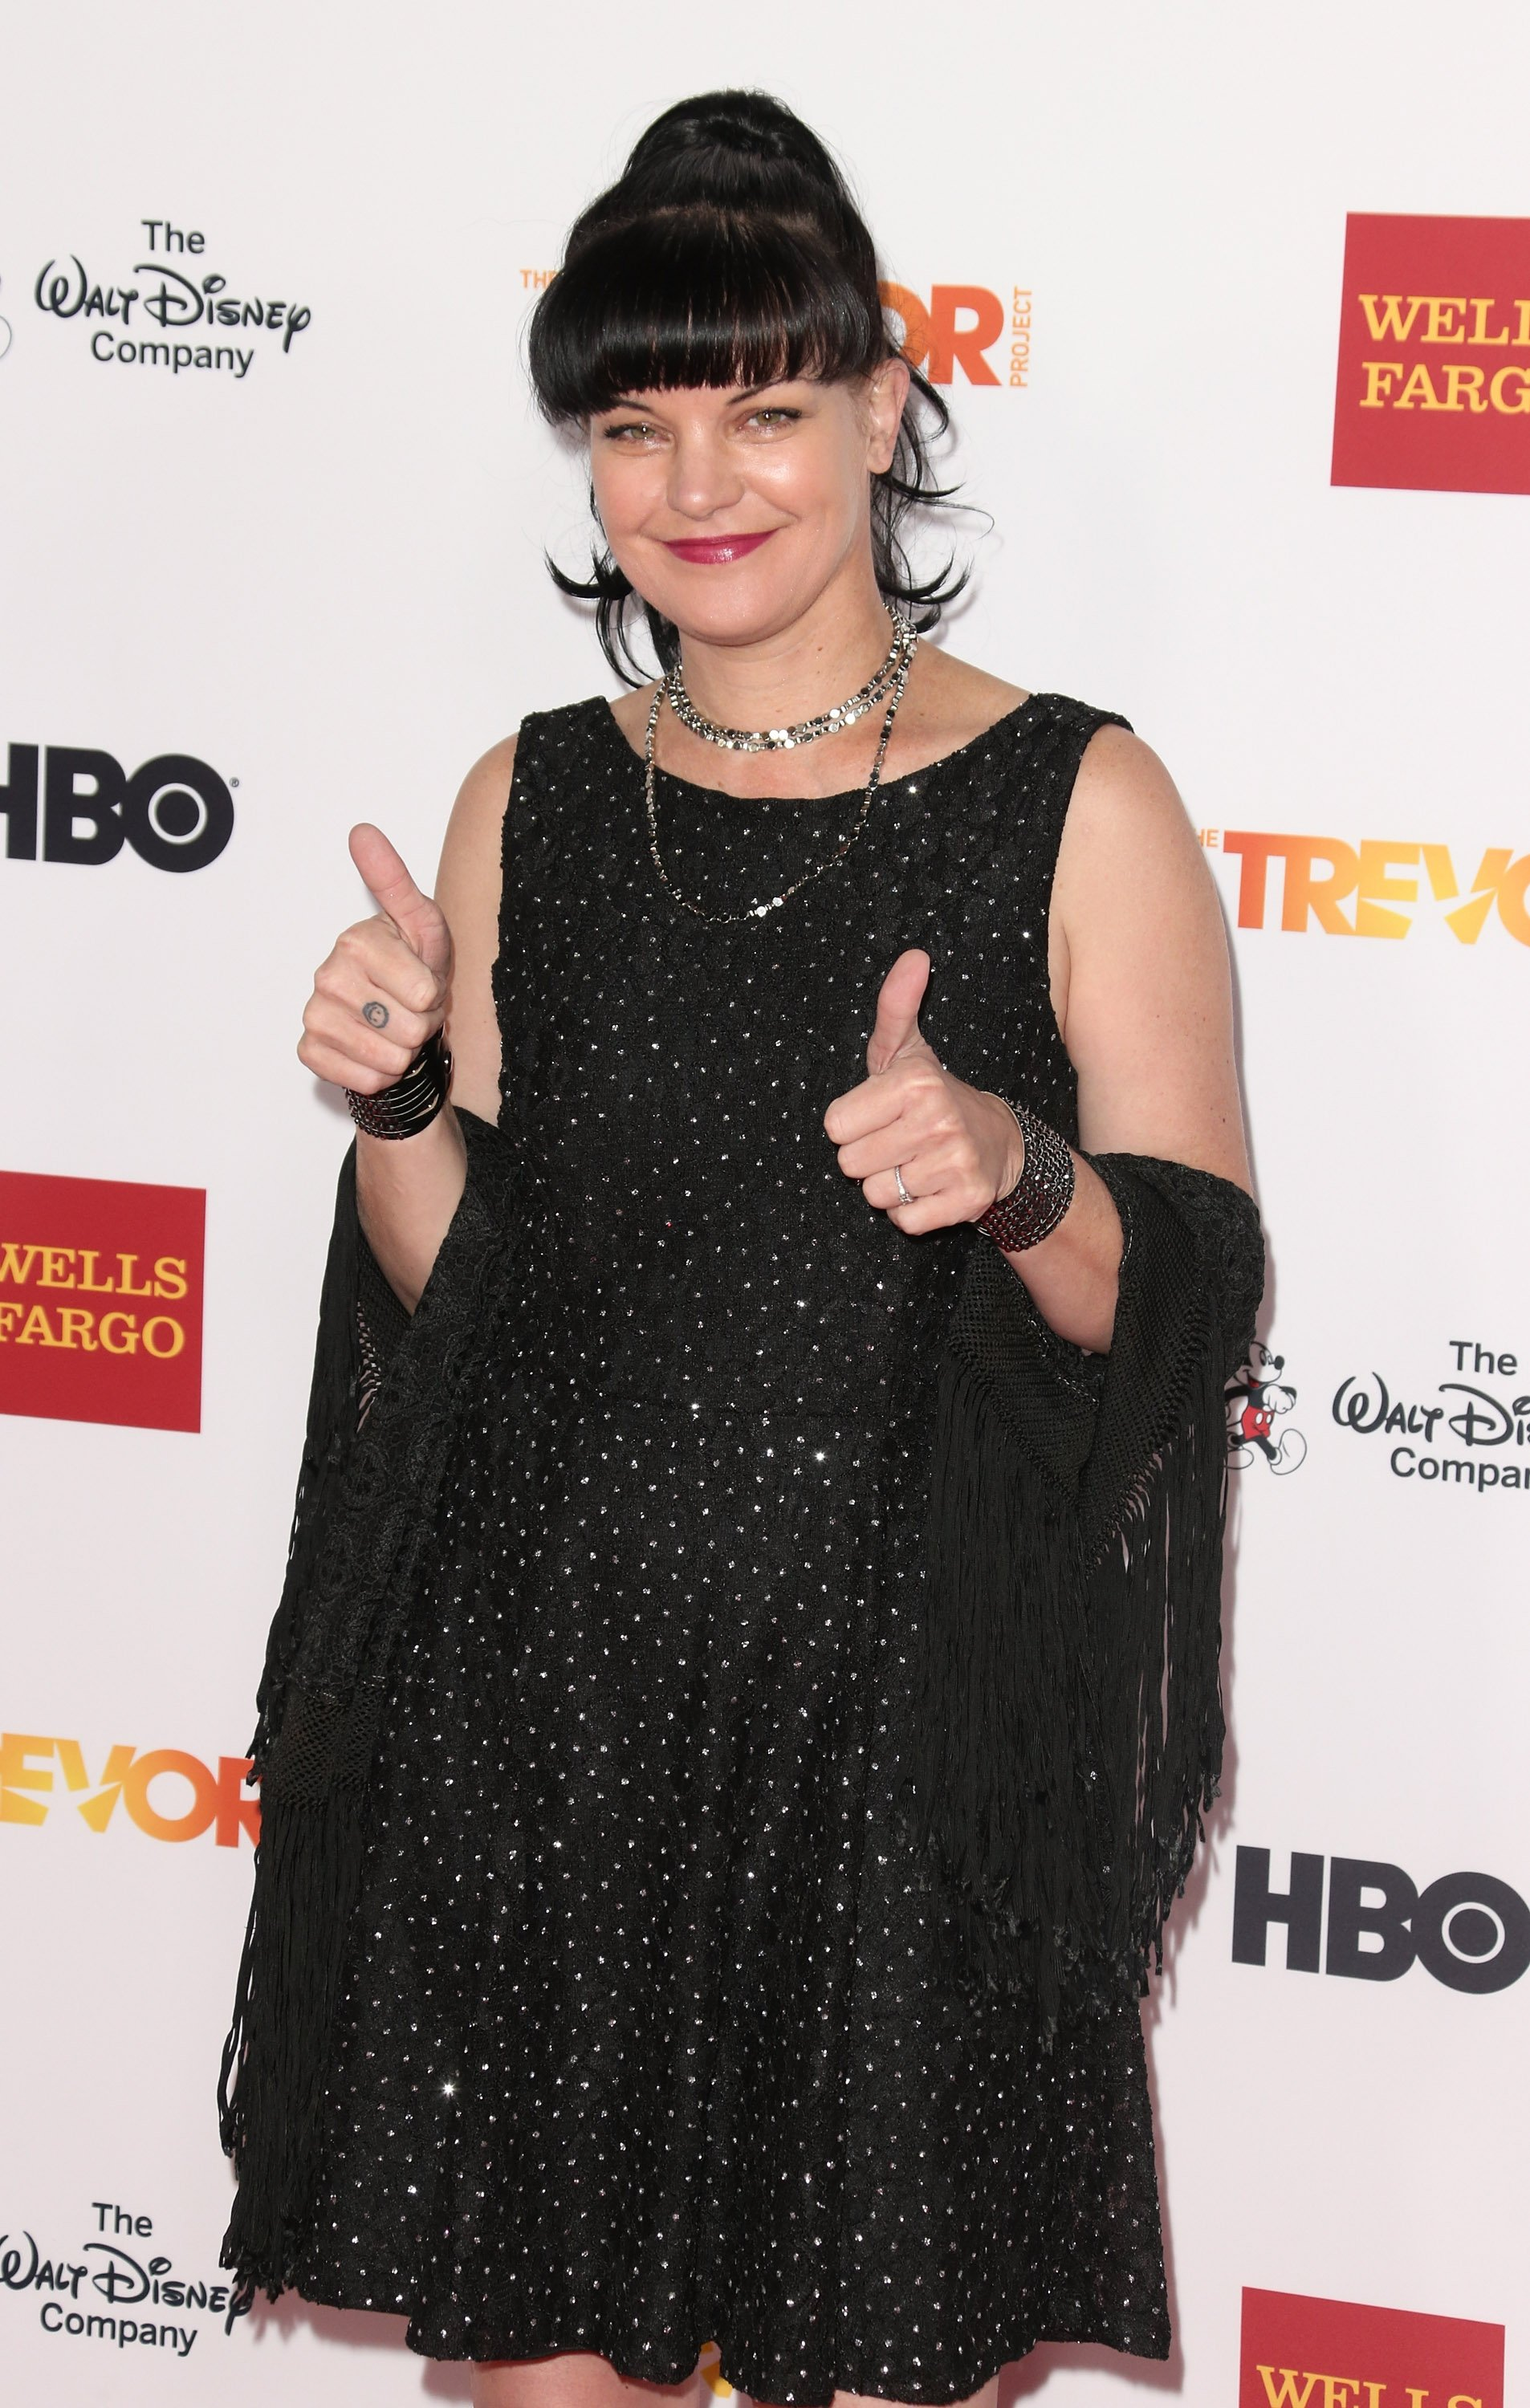 Pauley Perrette attends TrevorLIVE LA at Hollywood Palladium on December 6, 2015 | Photo: GettyImages